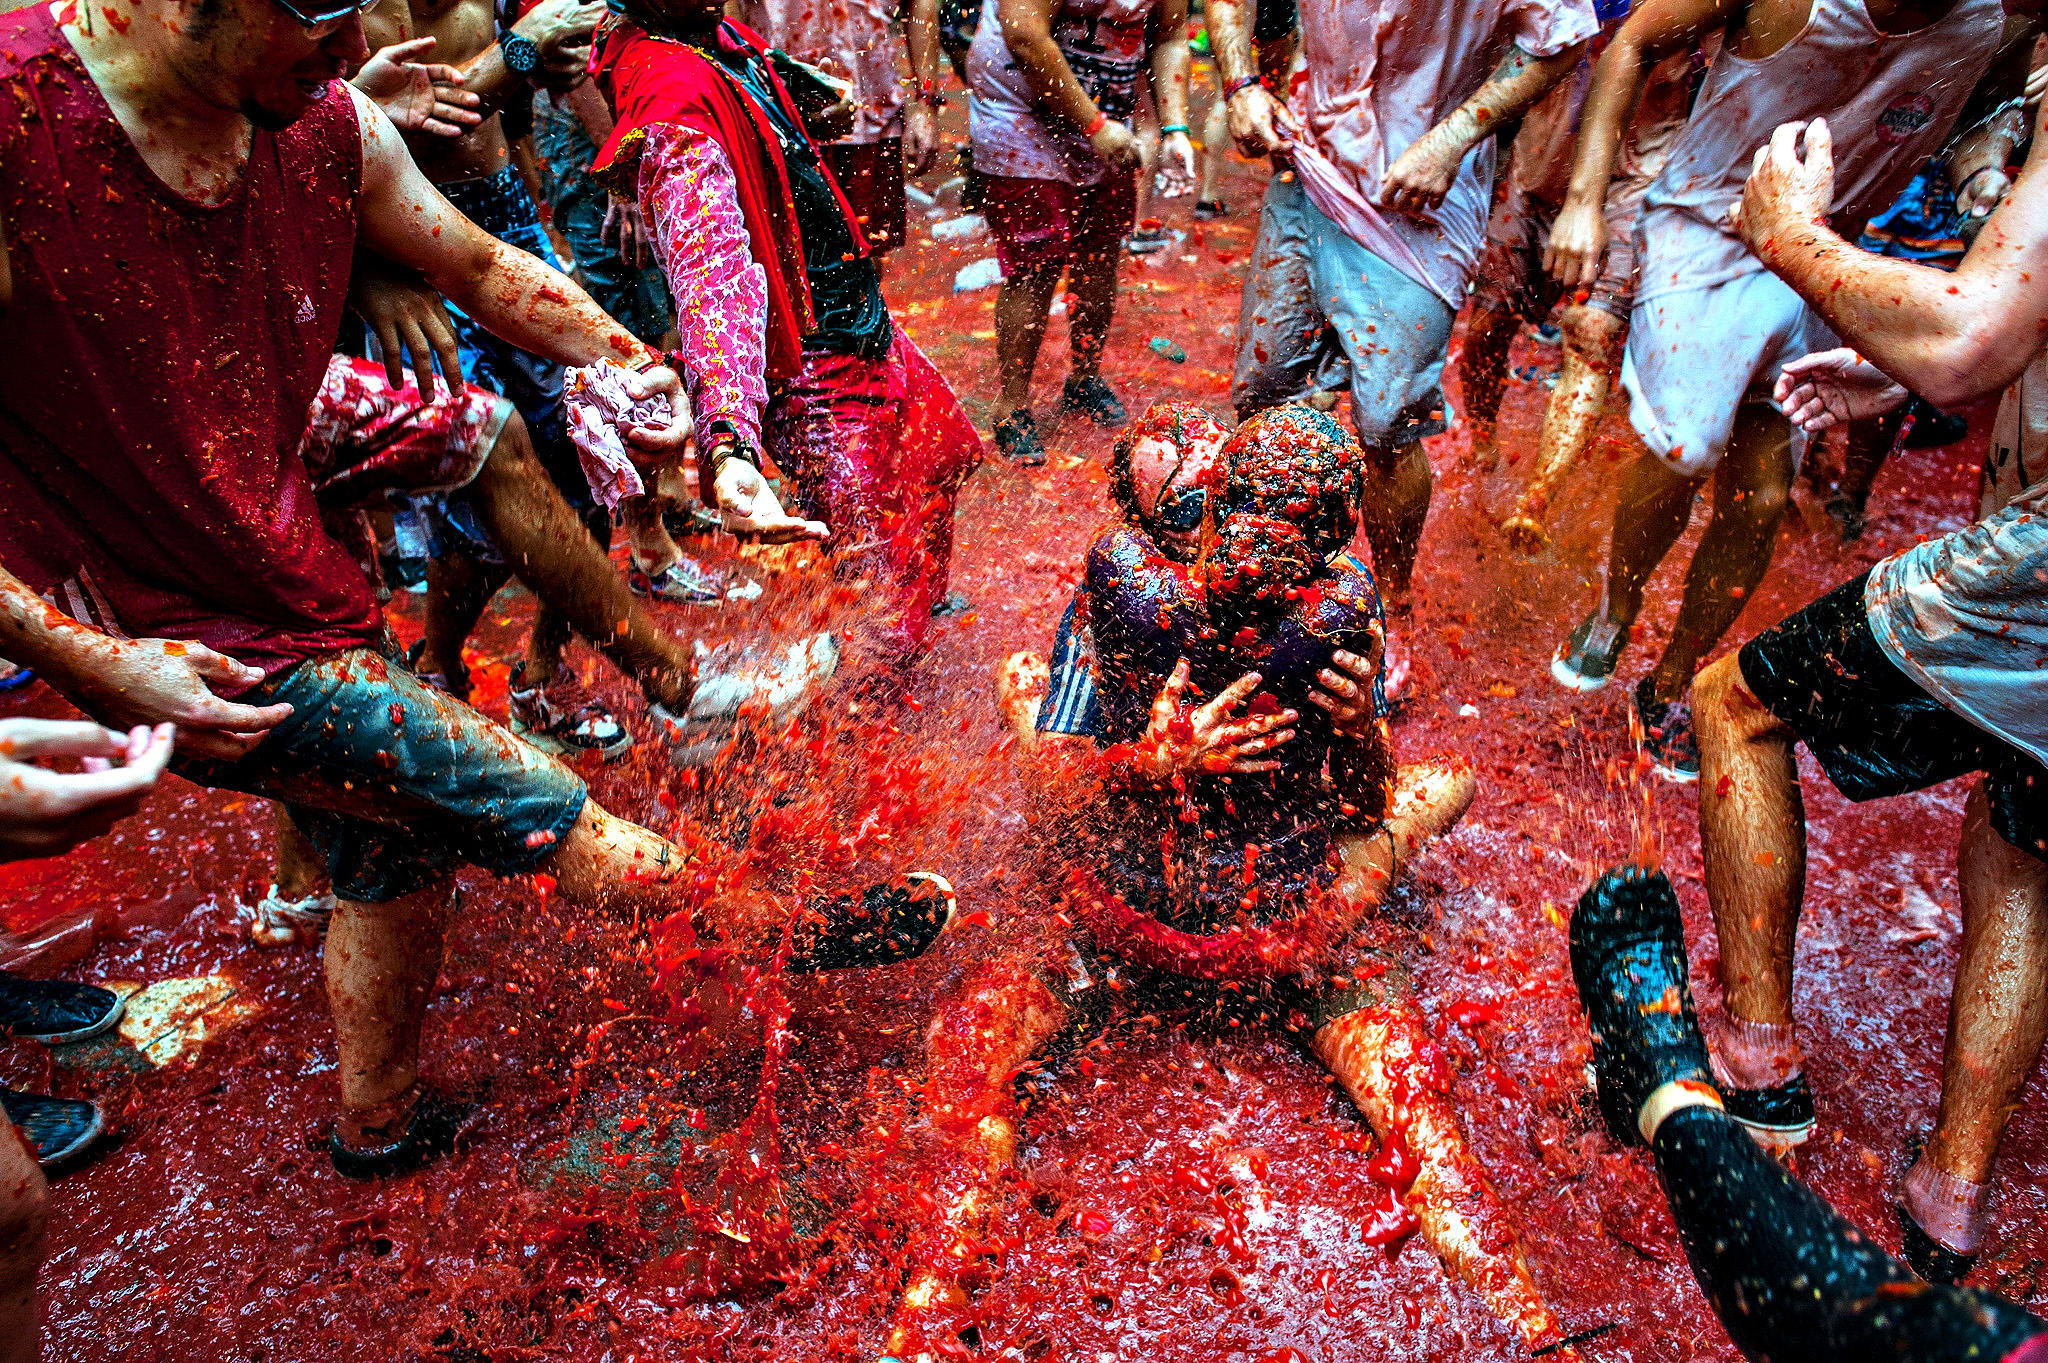 The World's Biggest Tomato Fight At Tomatina Festival 2013...BUN